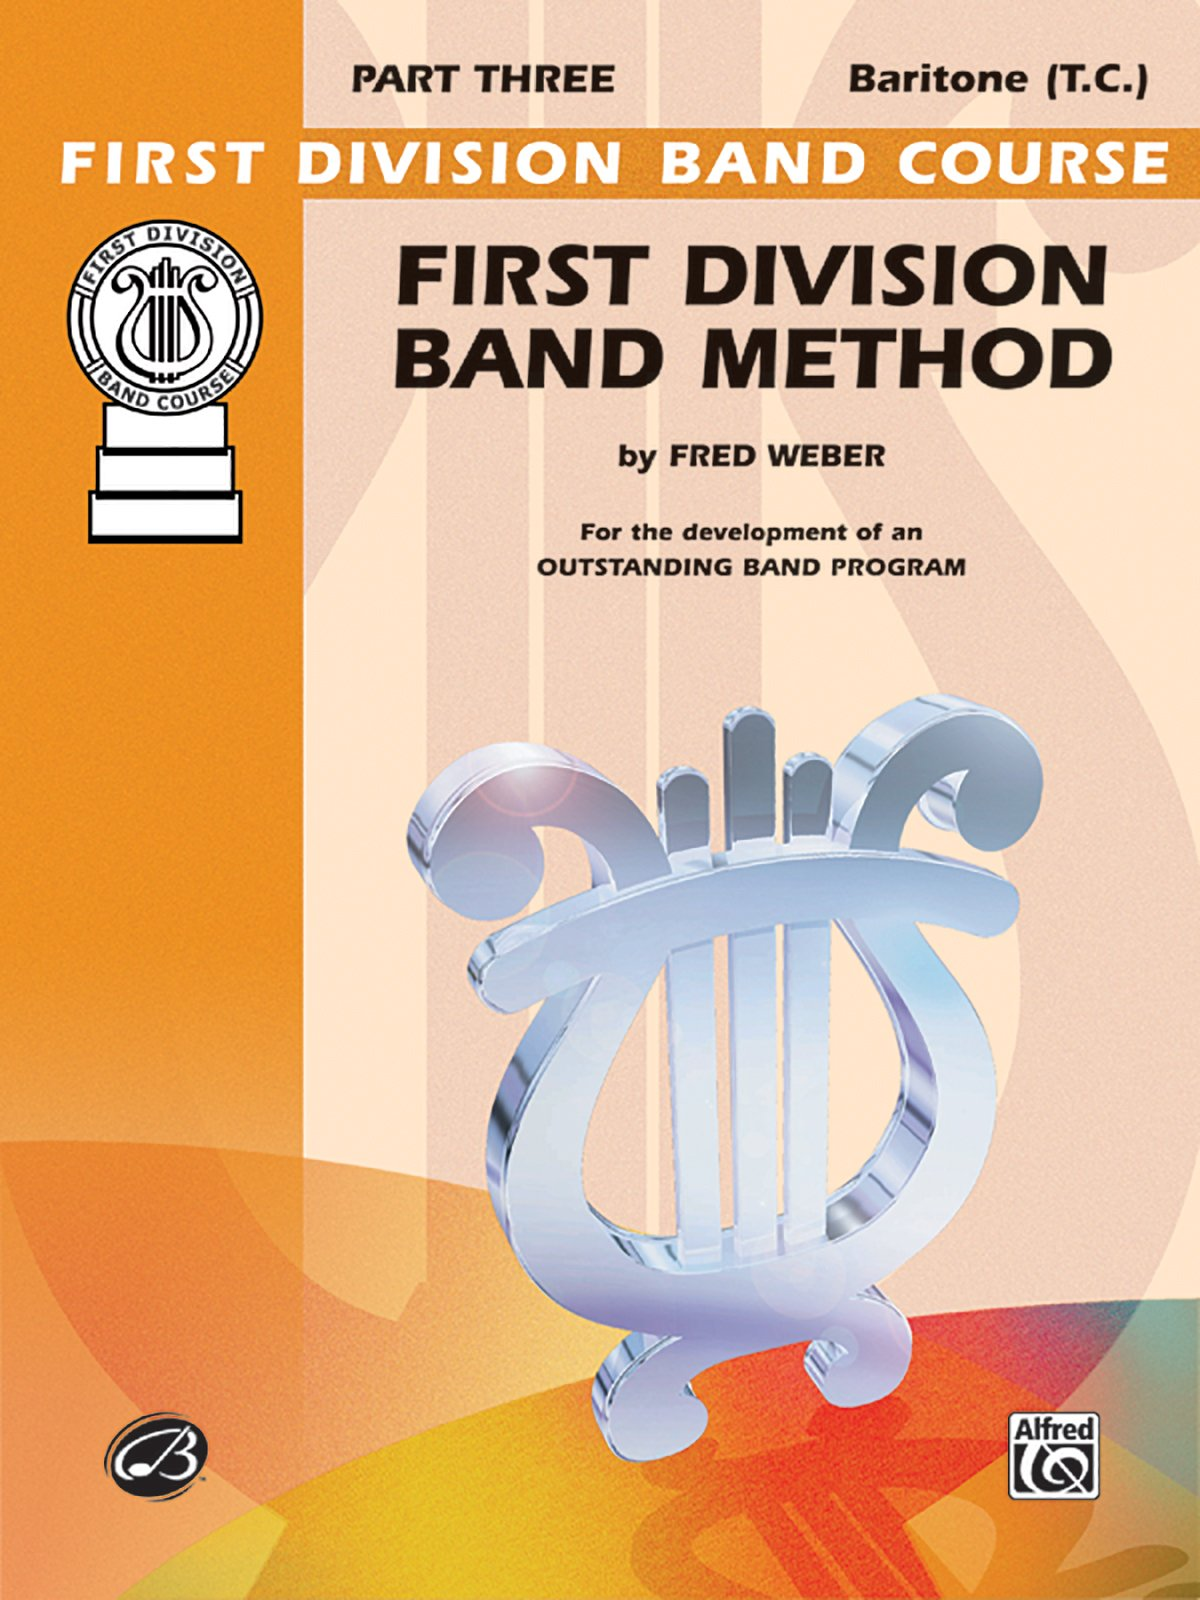 First Division Band Method, Part 3: Baritone (T.C.) (First Division Band Course) pdf